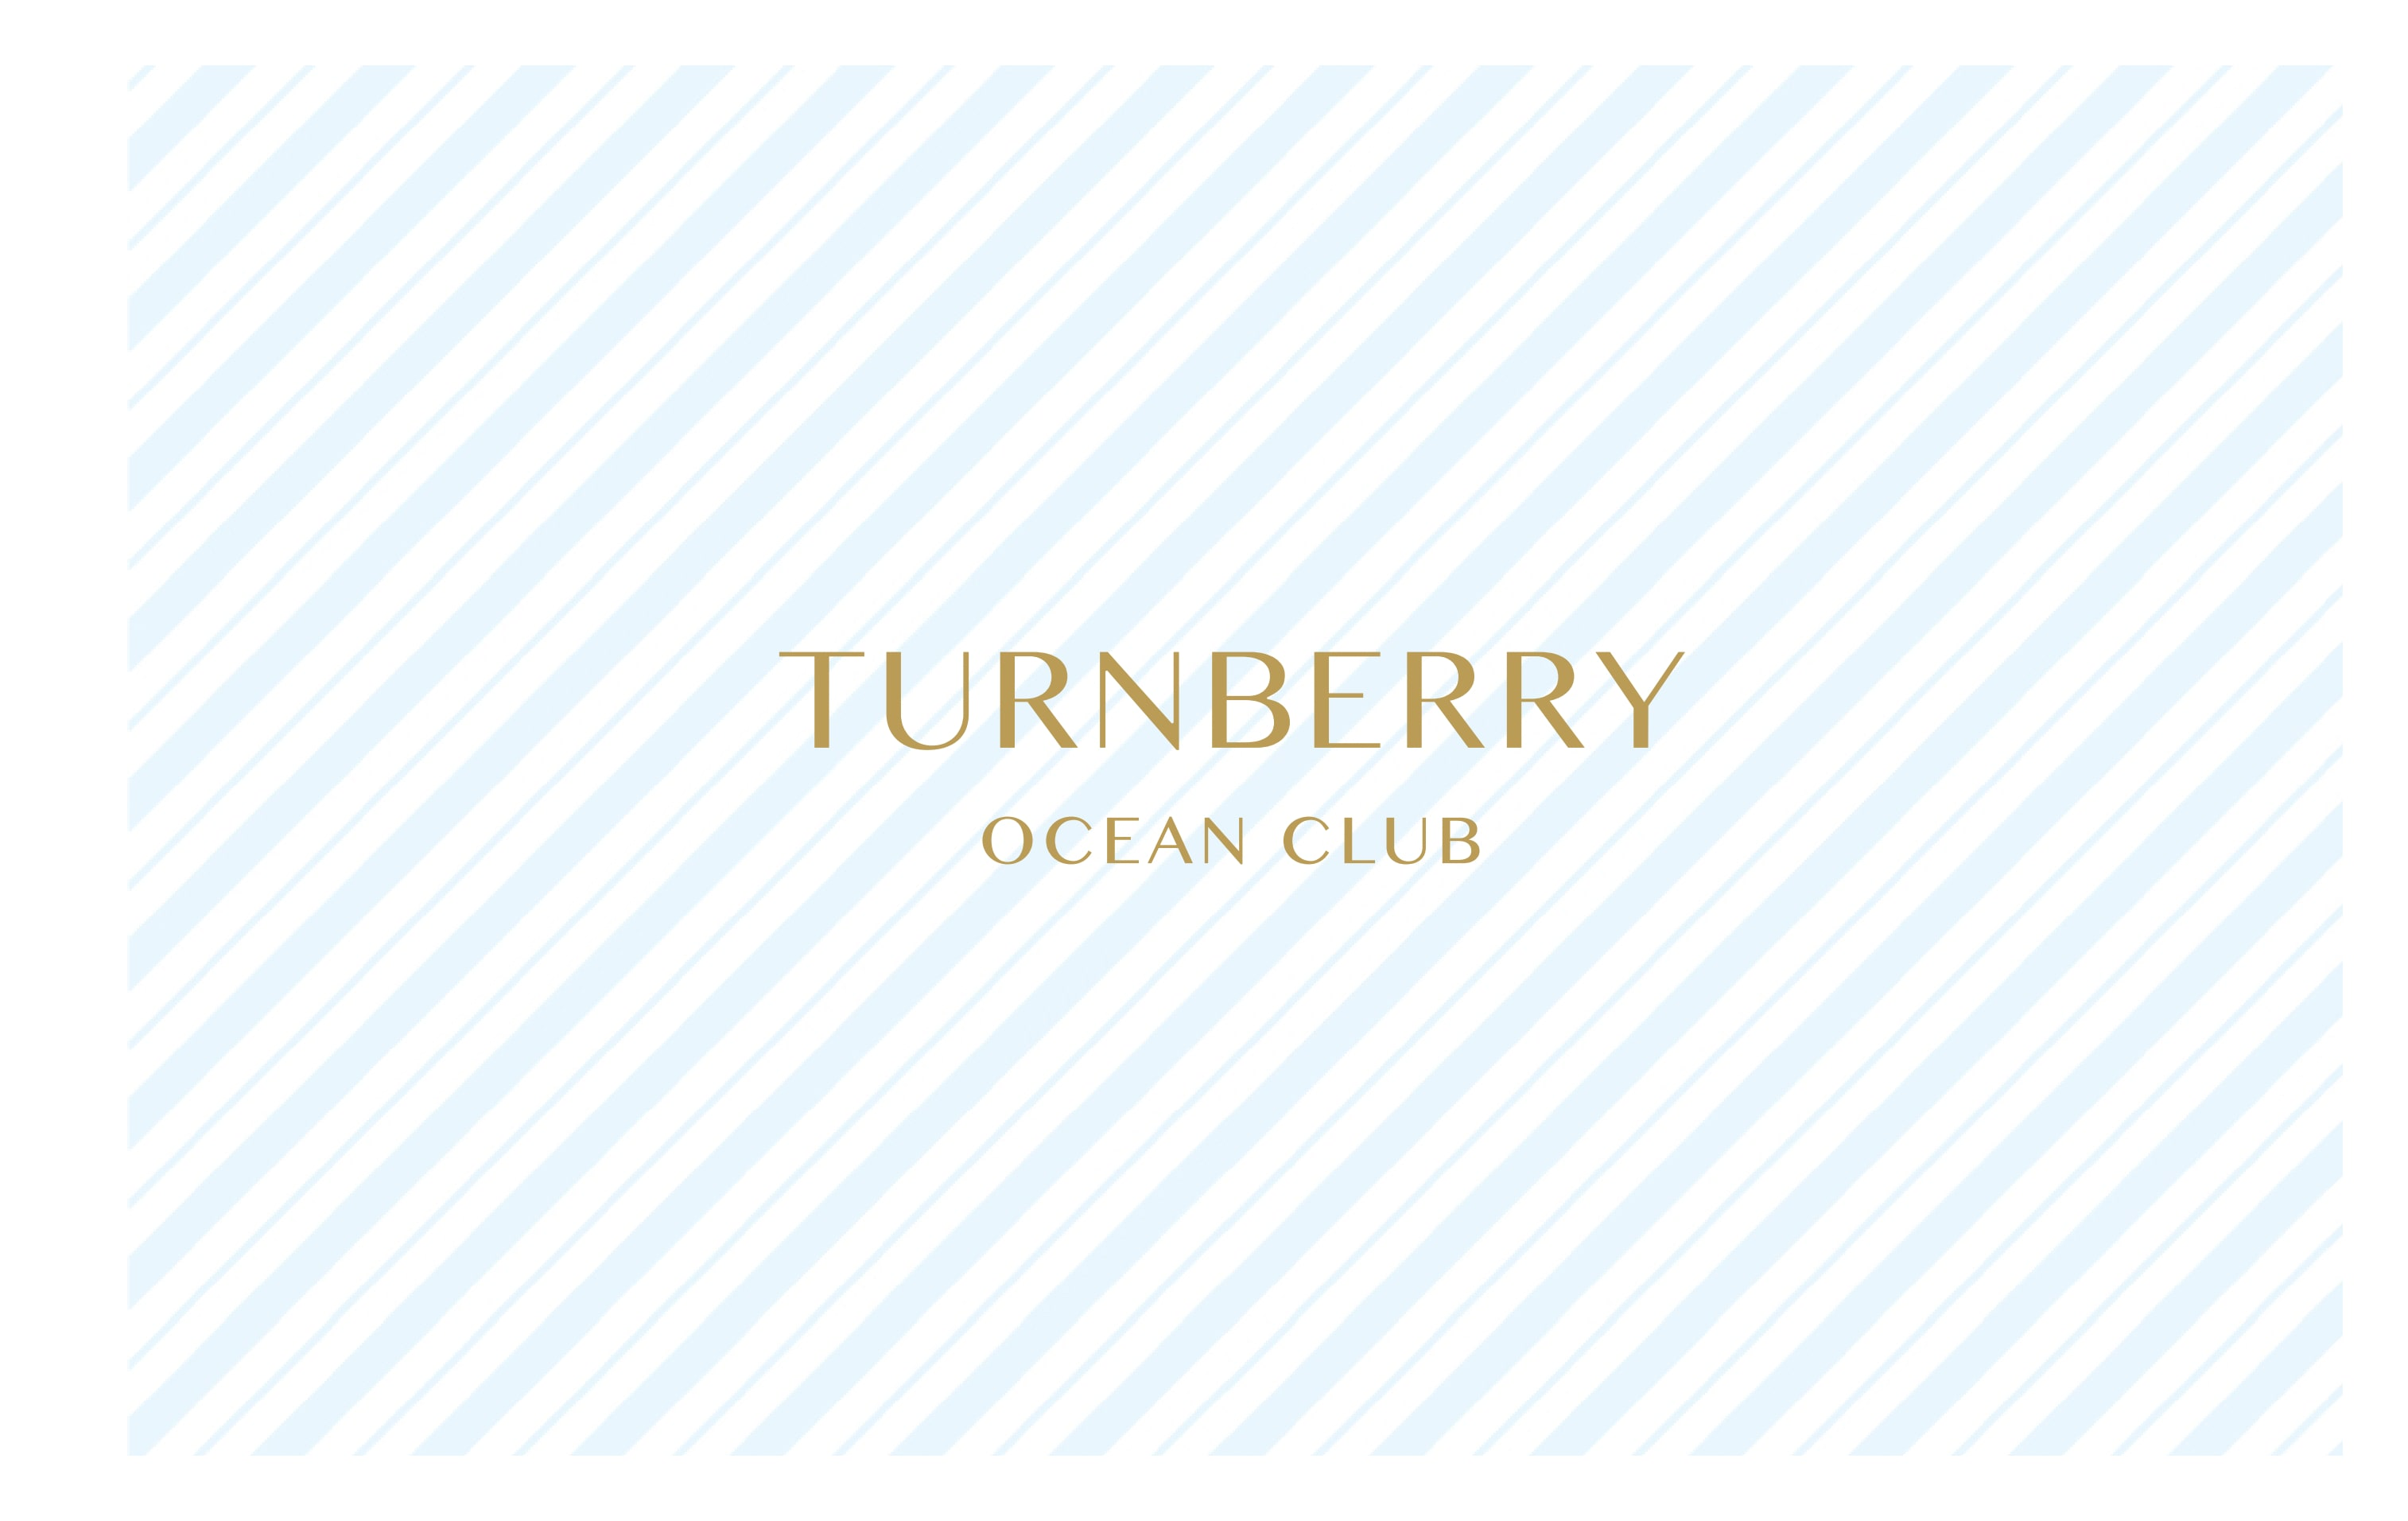 Turnberry Ocean Club Brochure